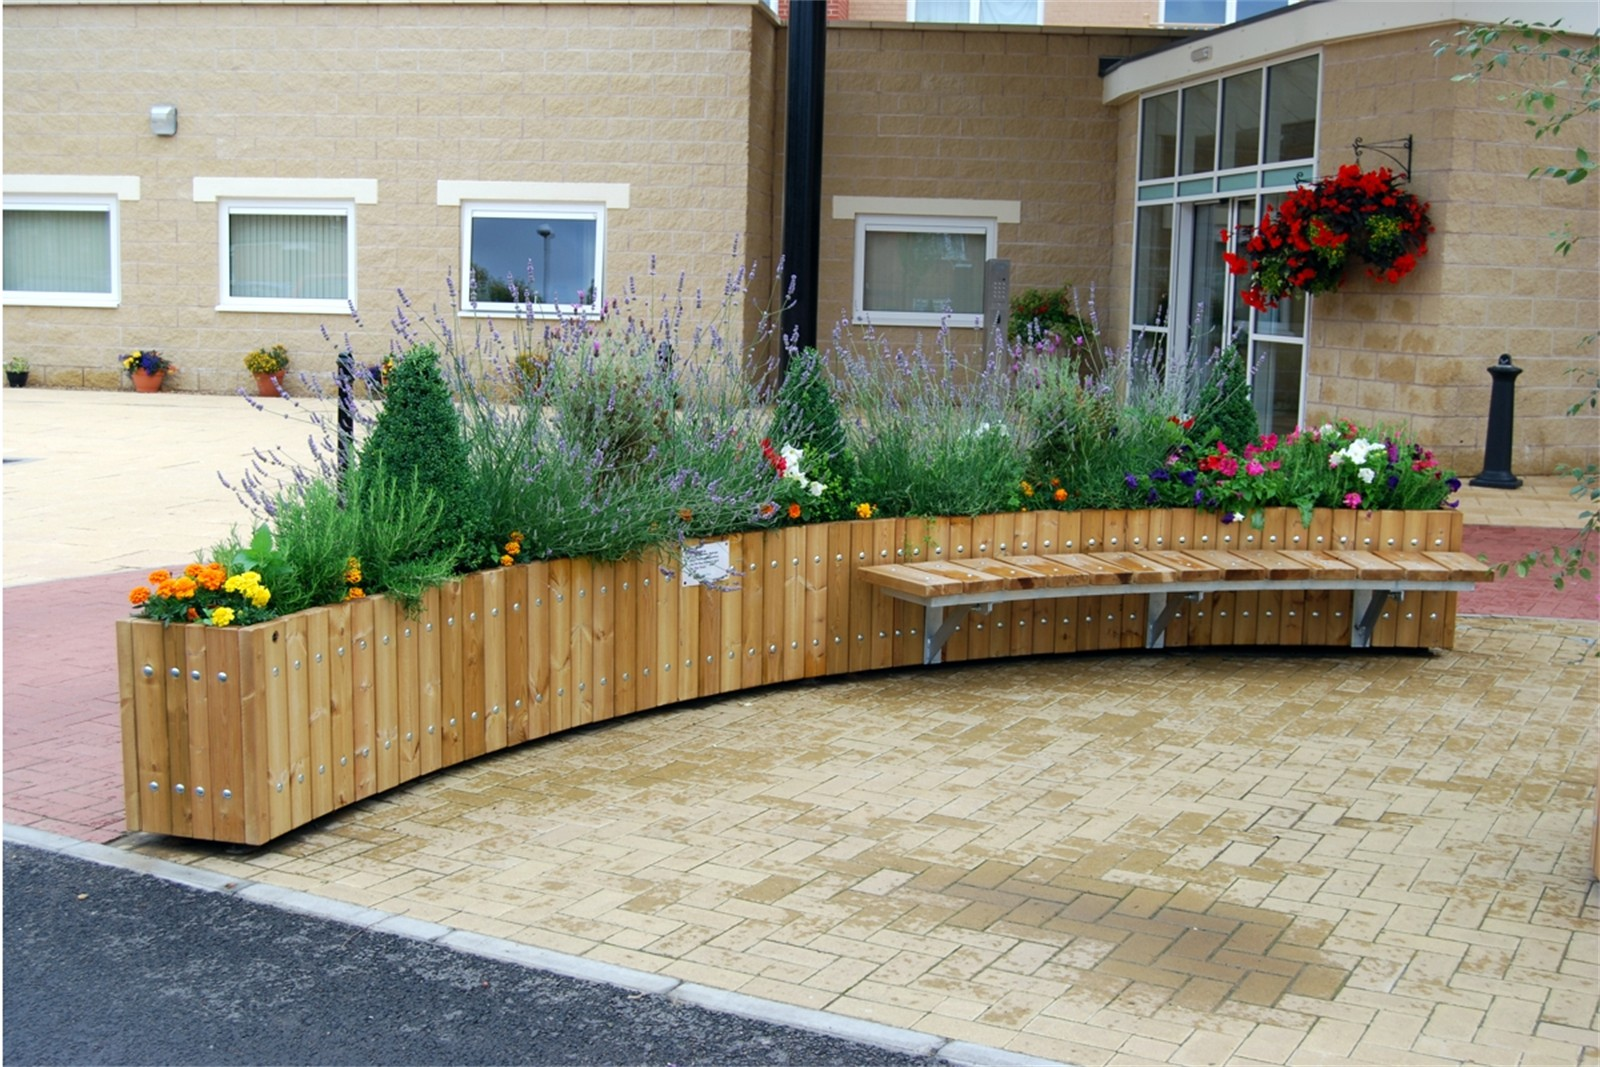 47p01 - Swithland curved planter with Spalding bench